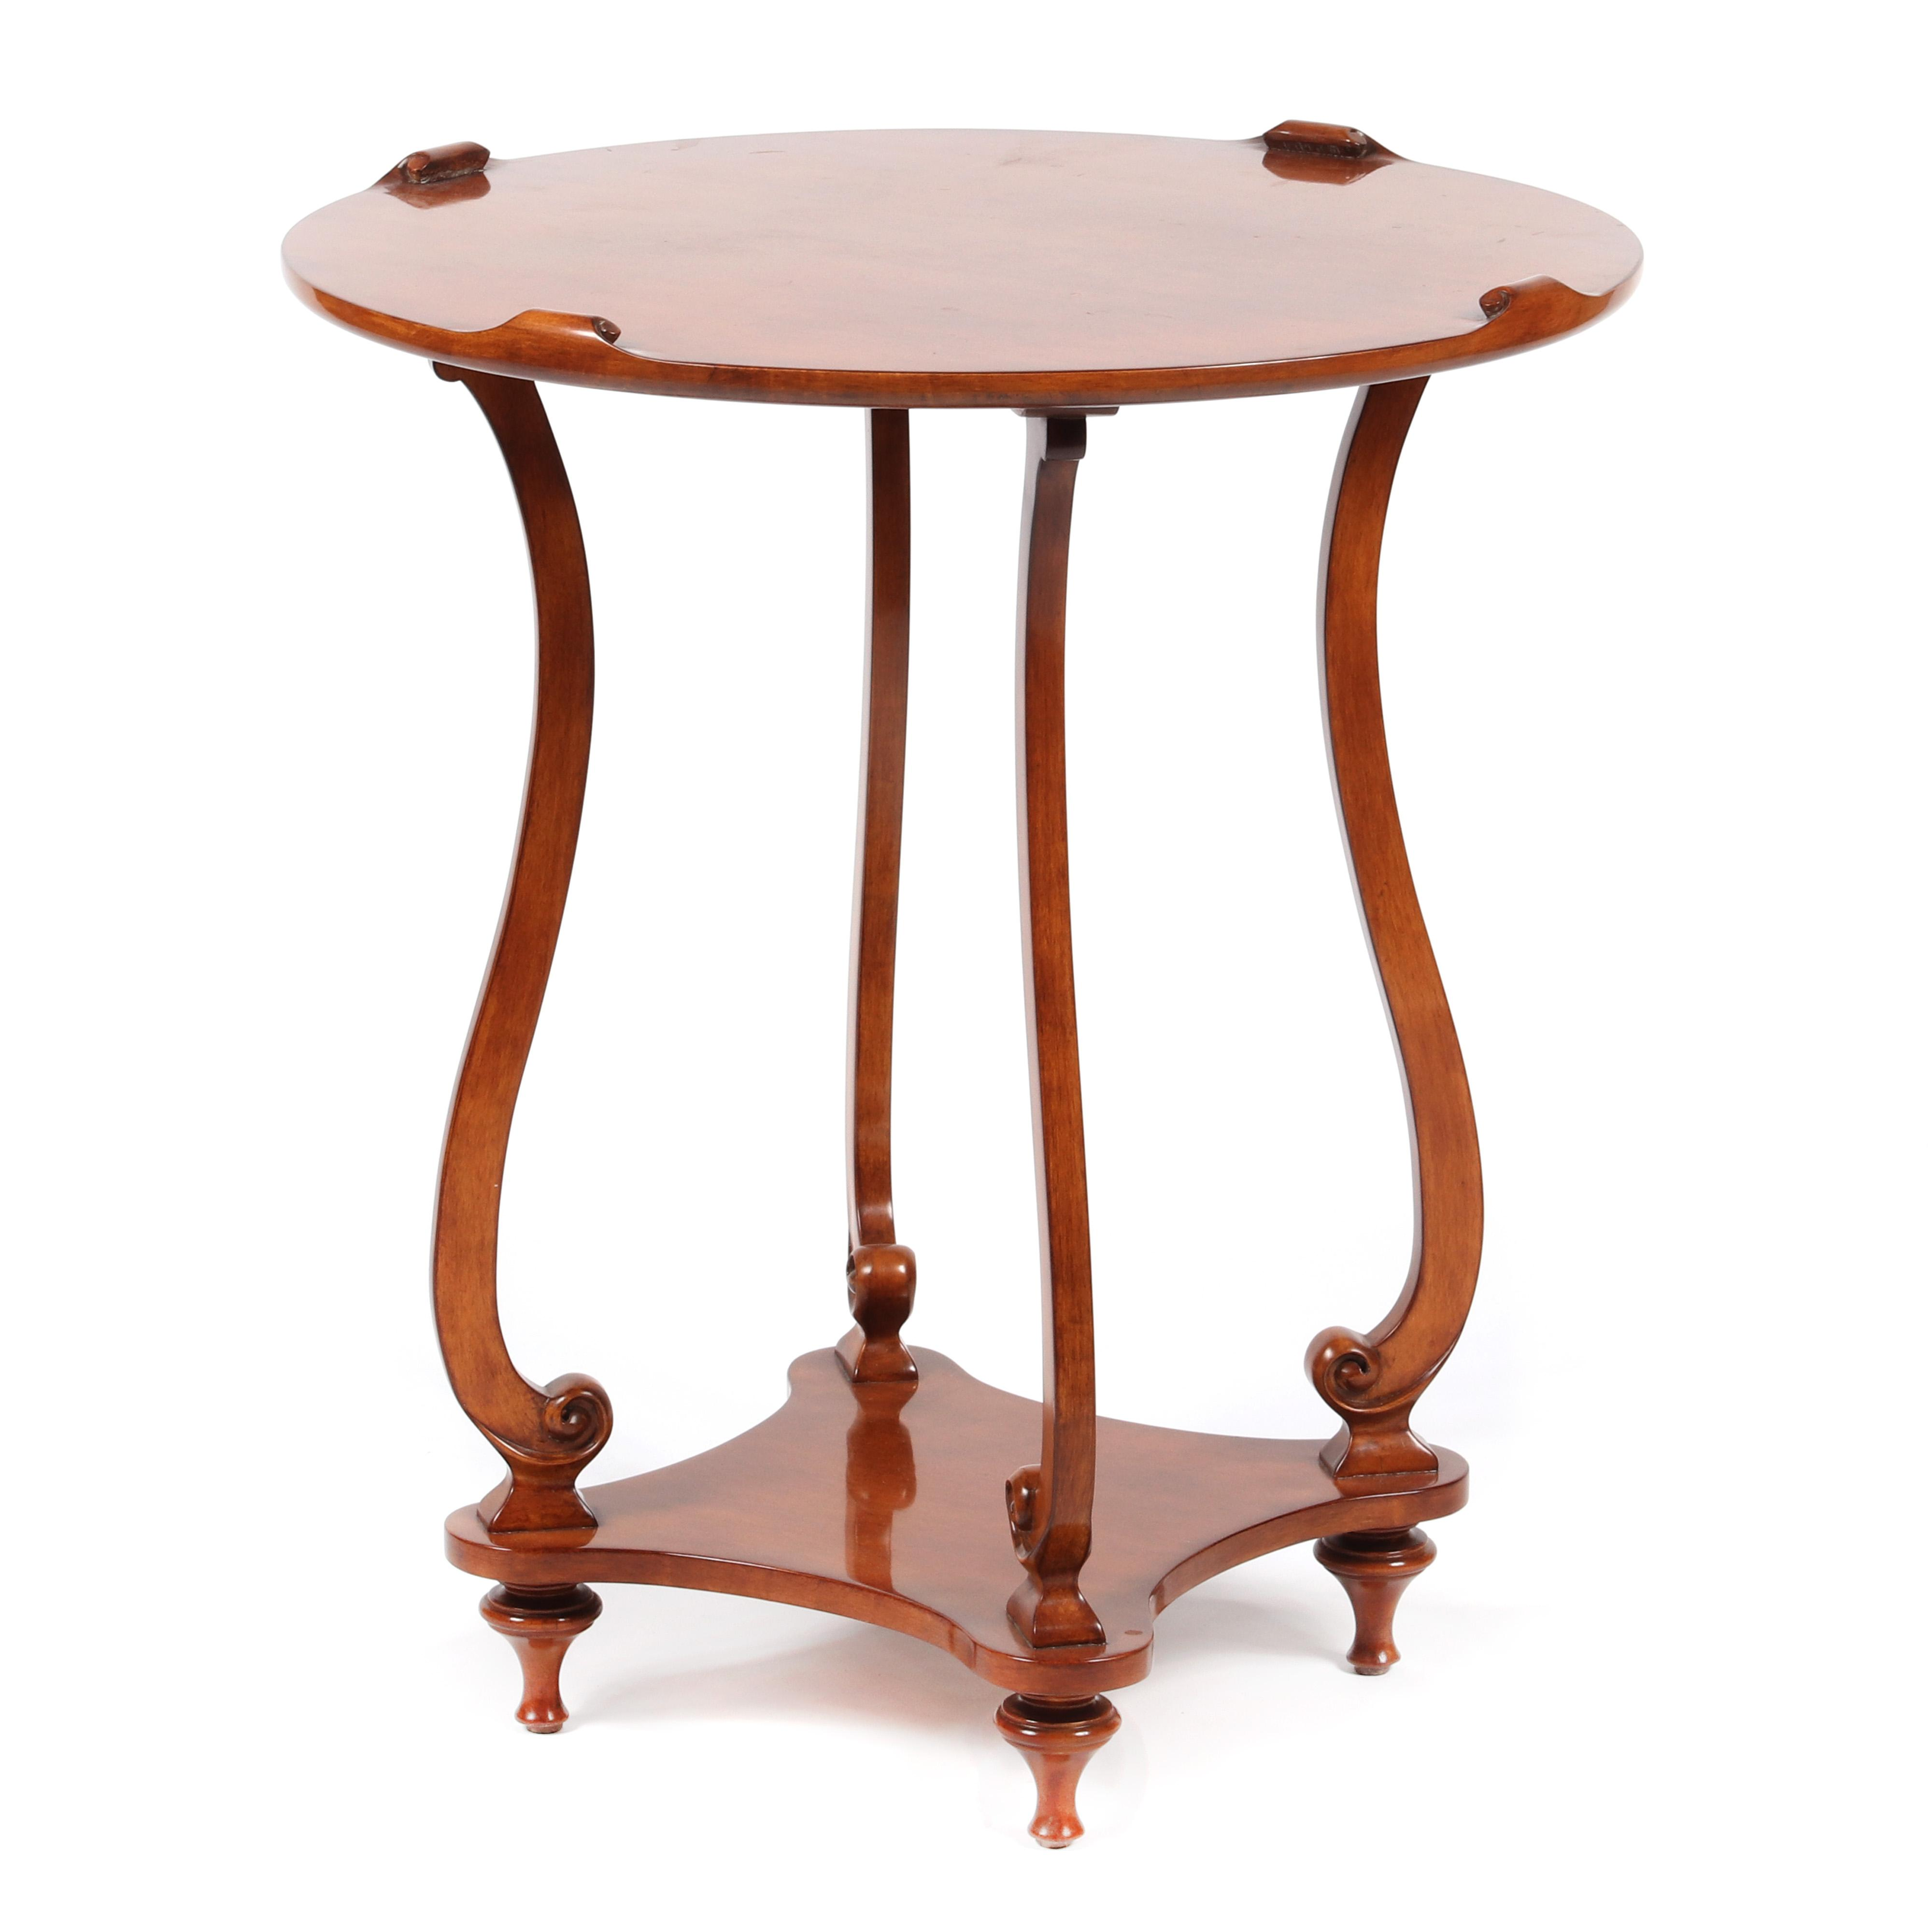 "Panache Designs 'Innsbruck Side Table'; birdseye maple with antique honey finish. 26""dia. x 29 1/2""H."